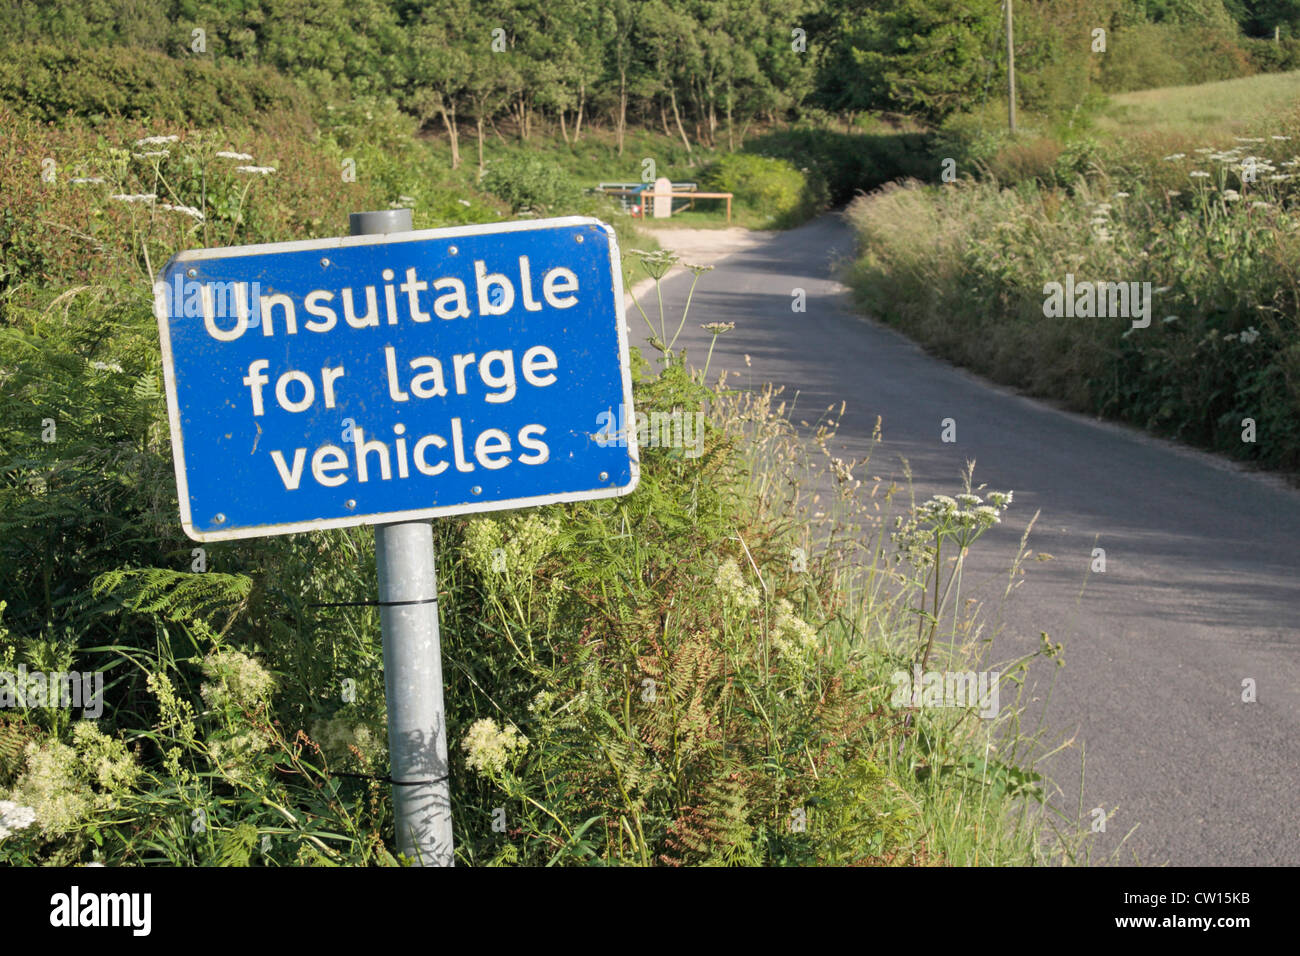 An 'Unsuitable for large vehicles' road sign on a small country road near Corfe Castle, Dorset, UK. - Stock Image